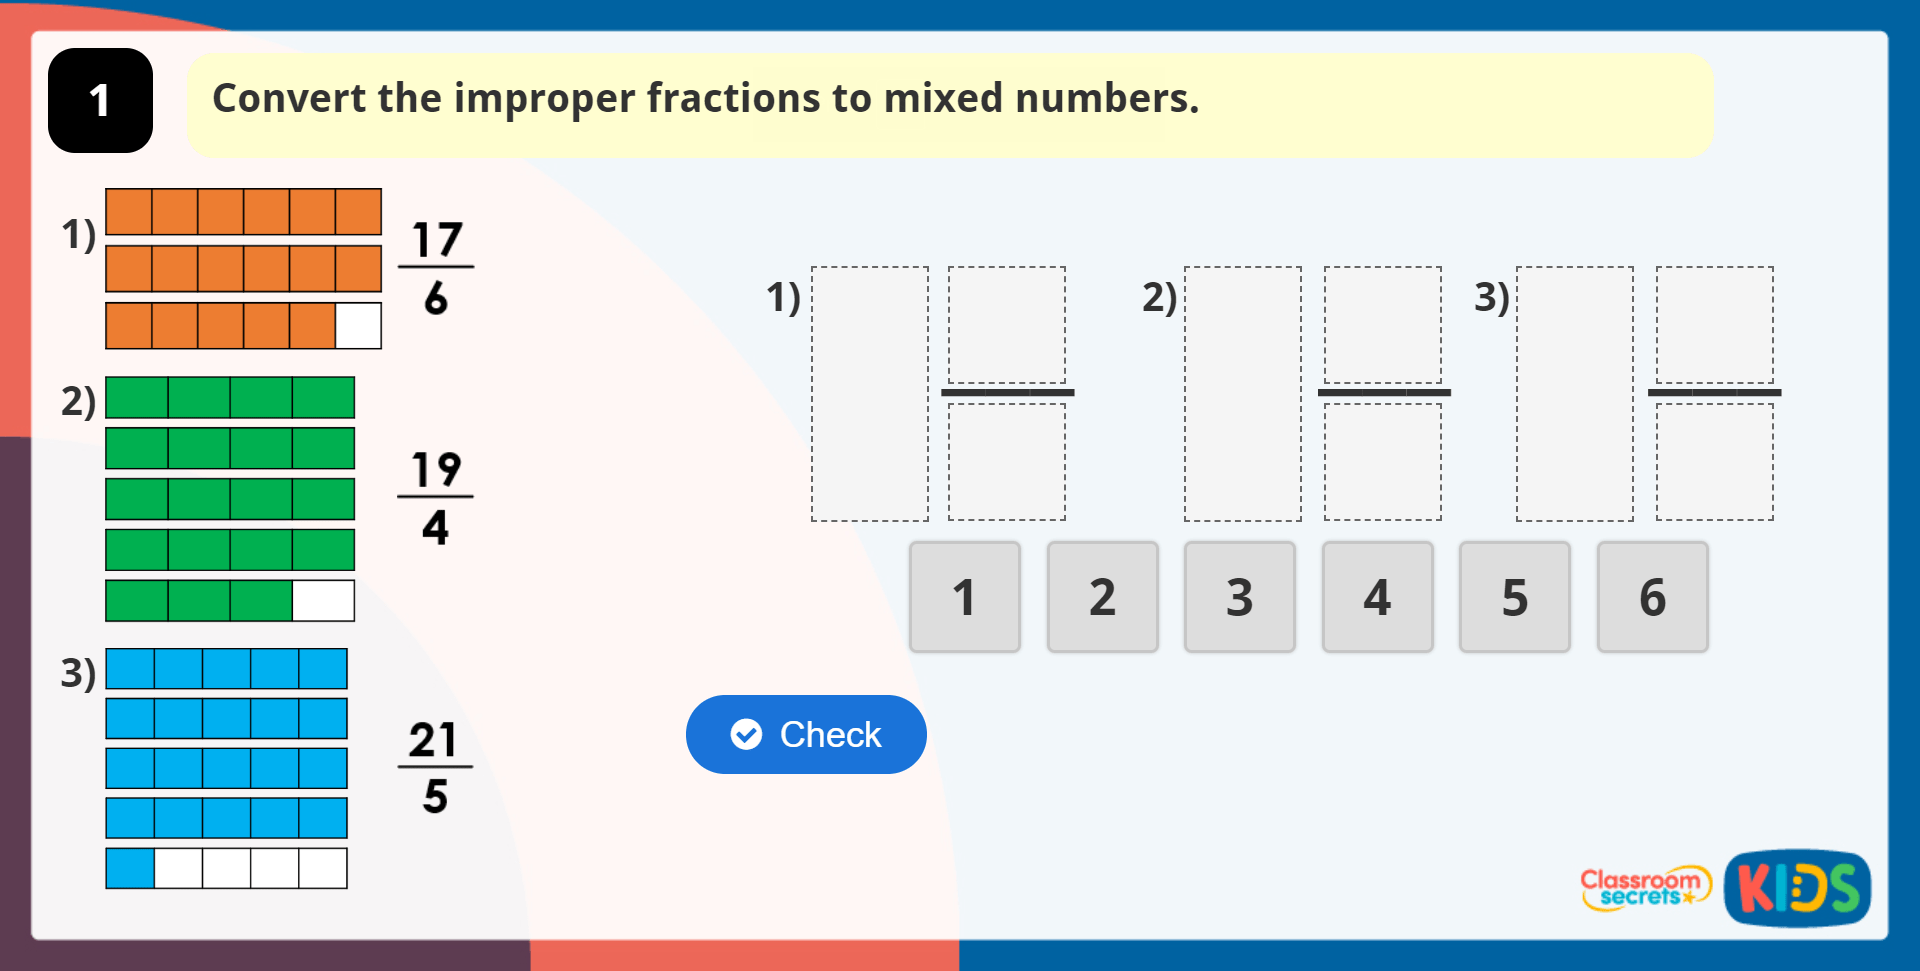 Year 5 Improper Fractions To Mixed Numbers